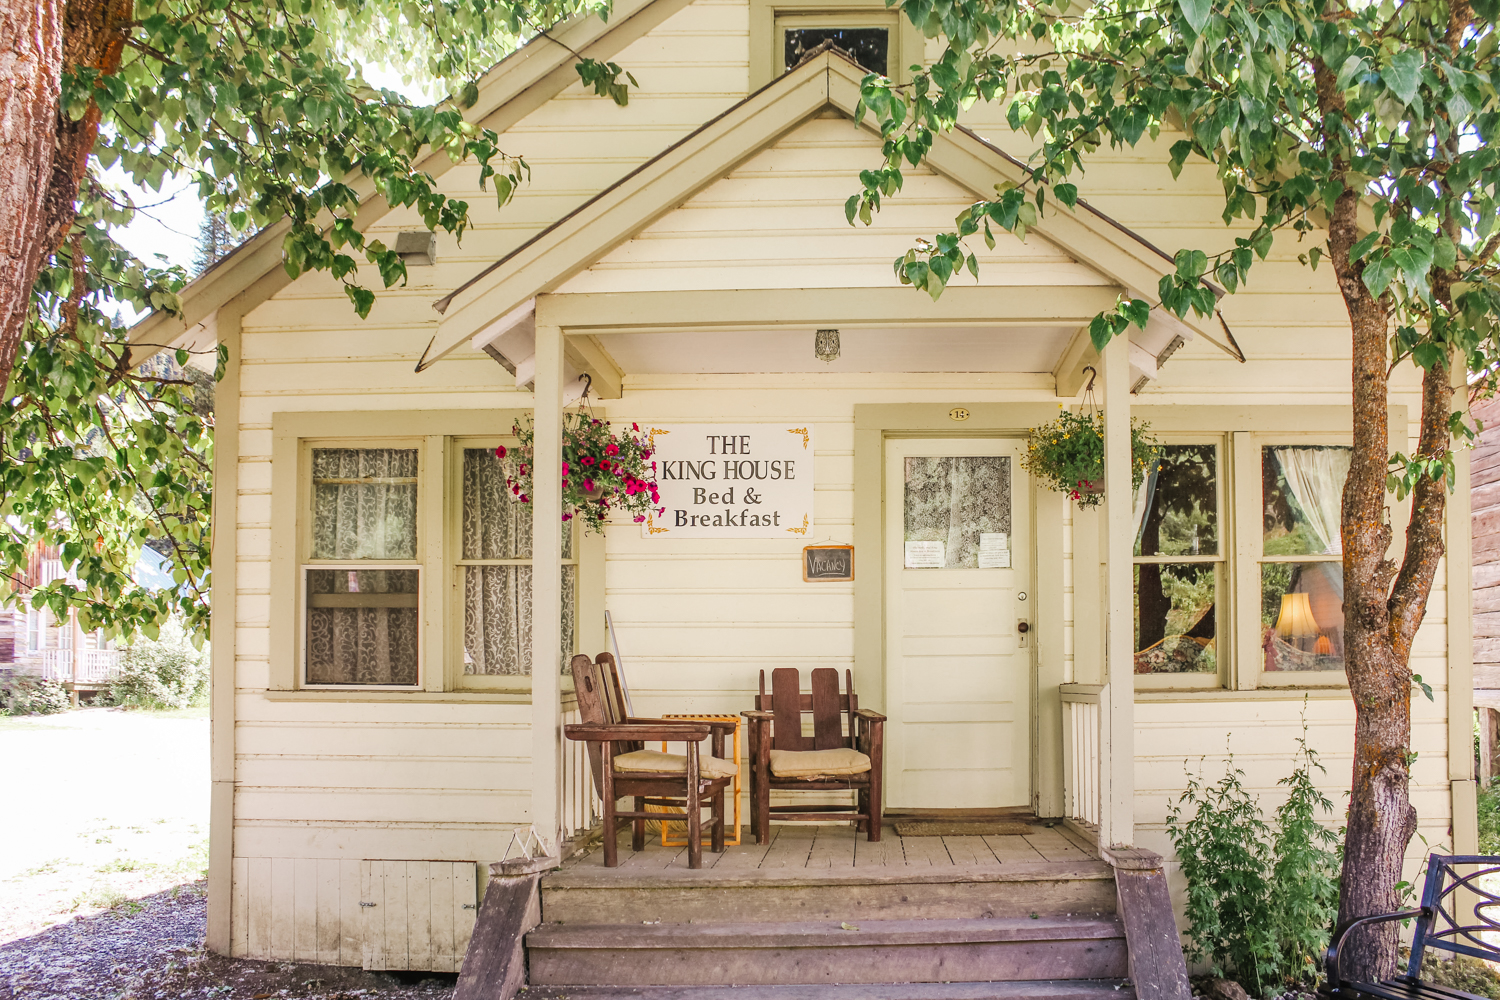 King House Bed and Breakfast, Barkerville, BC